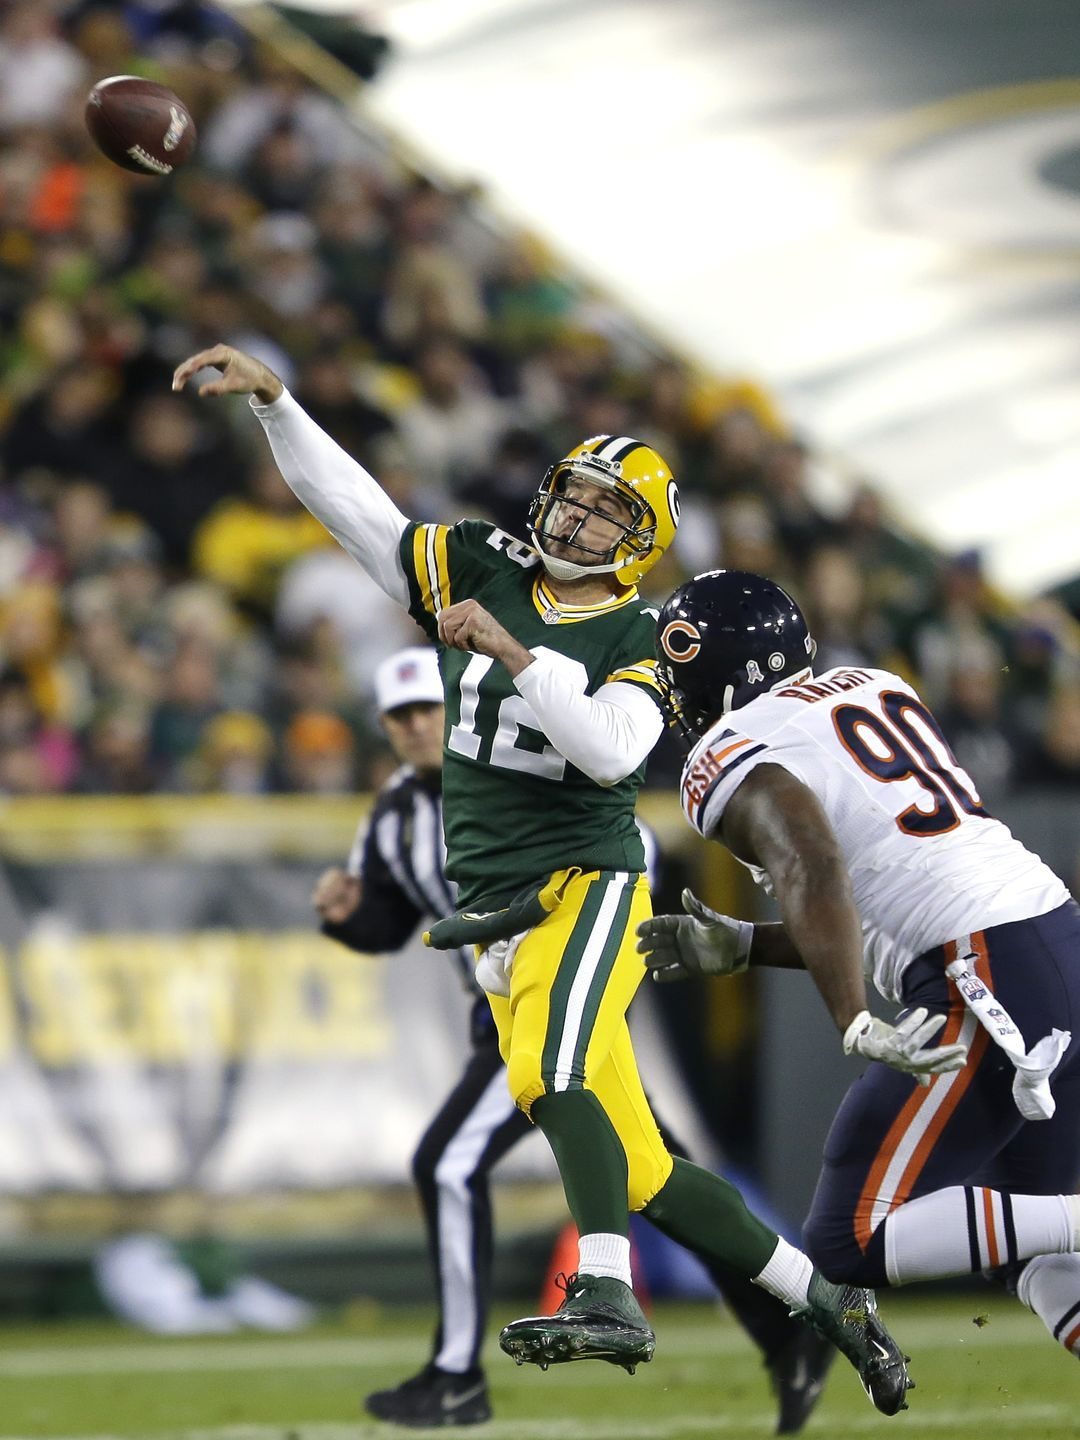 Week 10 Green Bay Packers 55 Chicago Bears 14 Green Bay Packers Packers Jordy Nelson